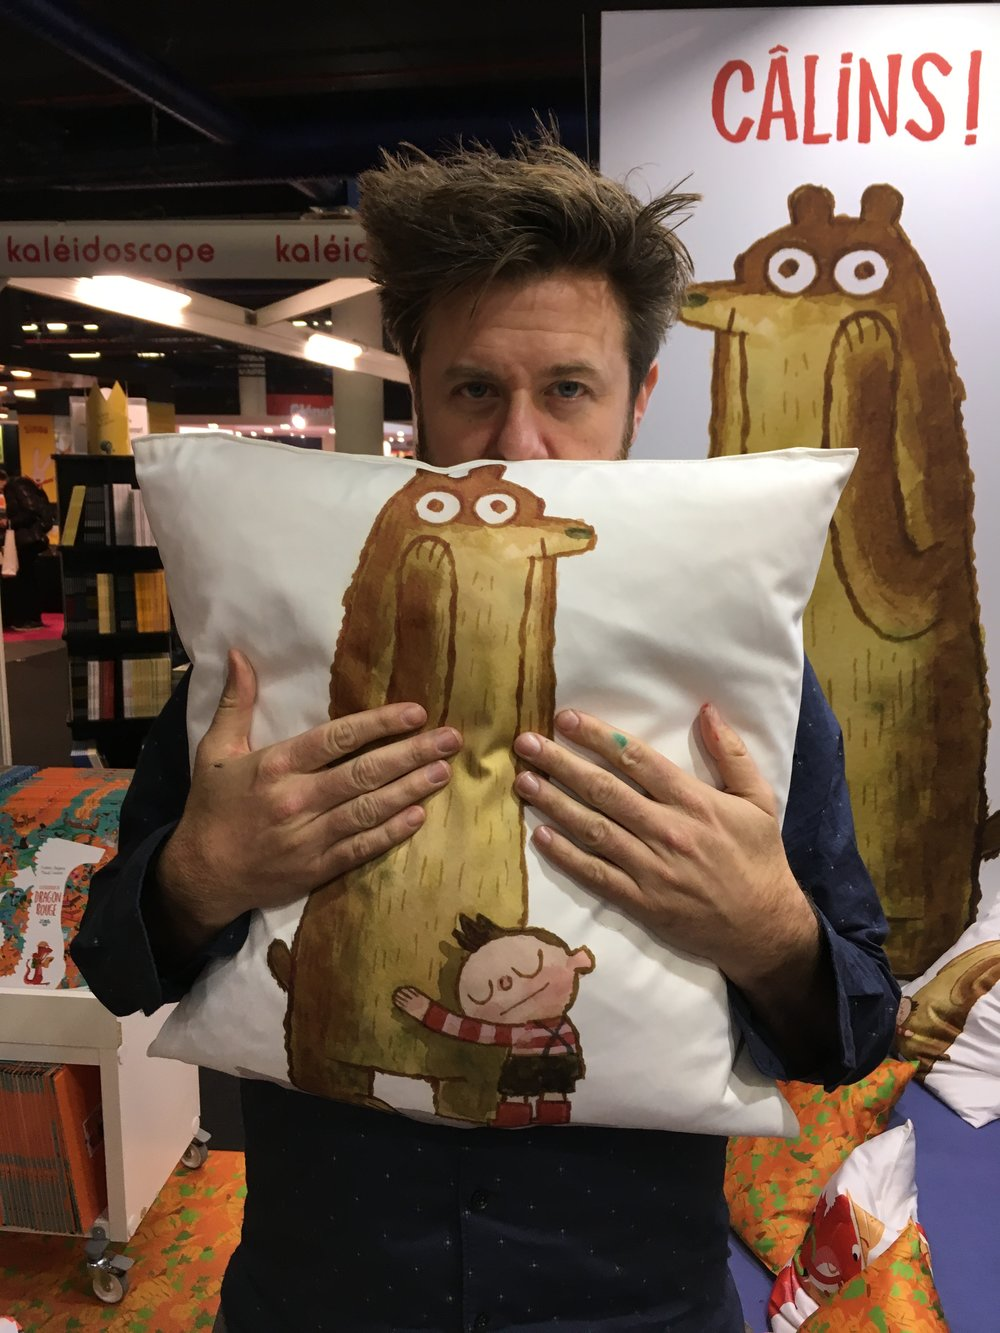 They made pillows for you to HUG.